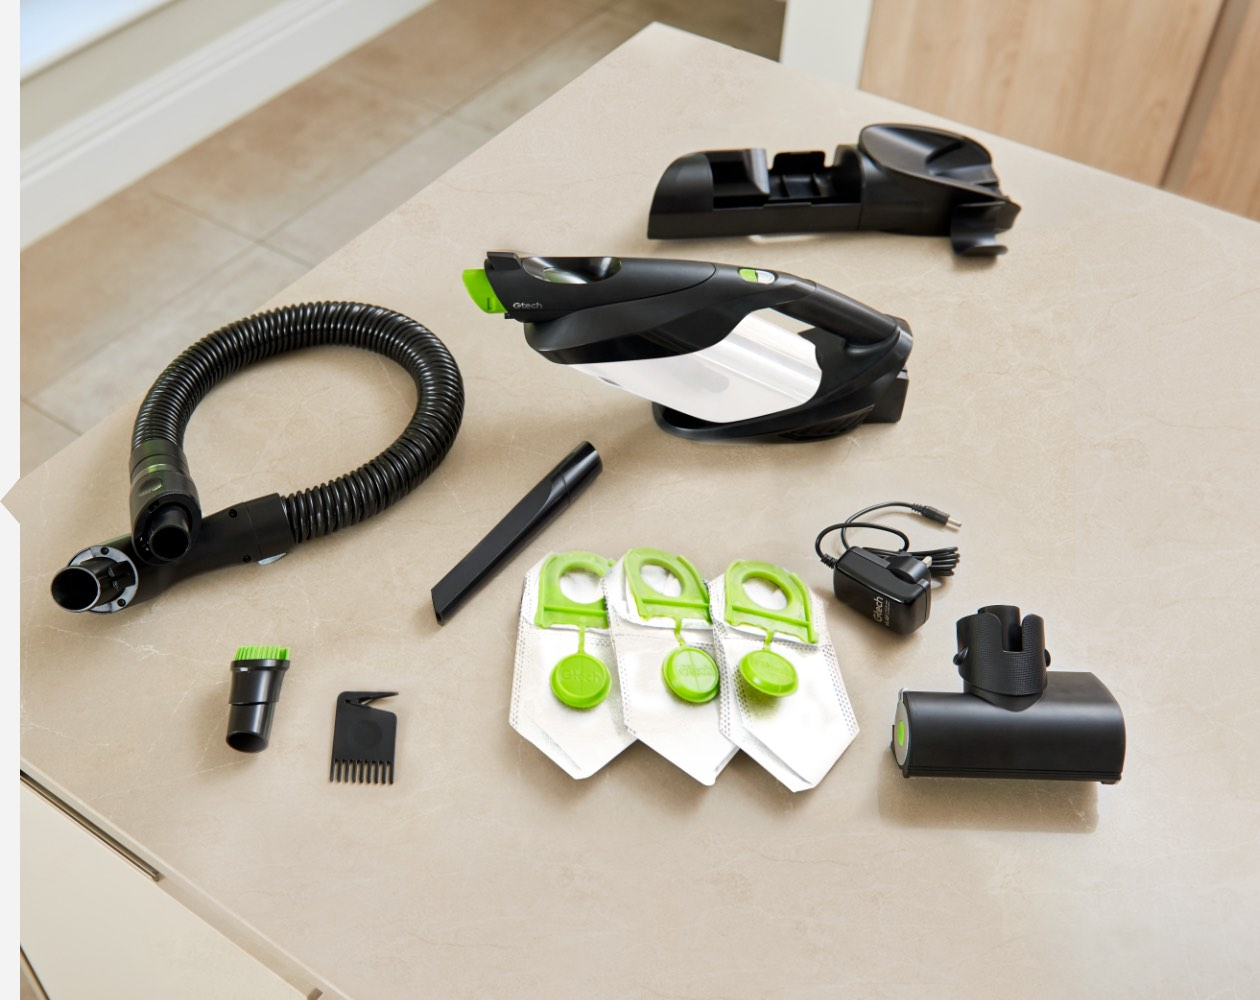 Compatible attachments with the ProLite handheld hoover